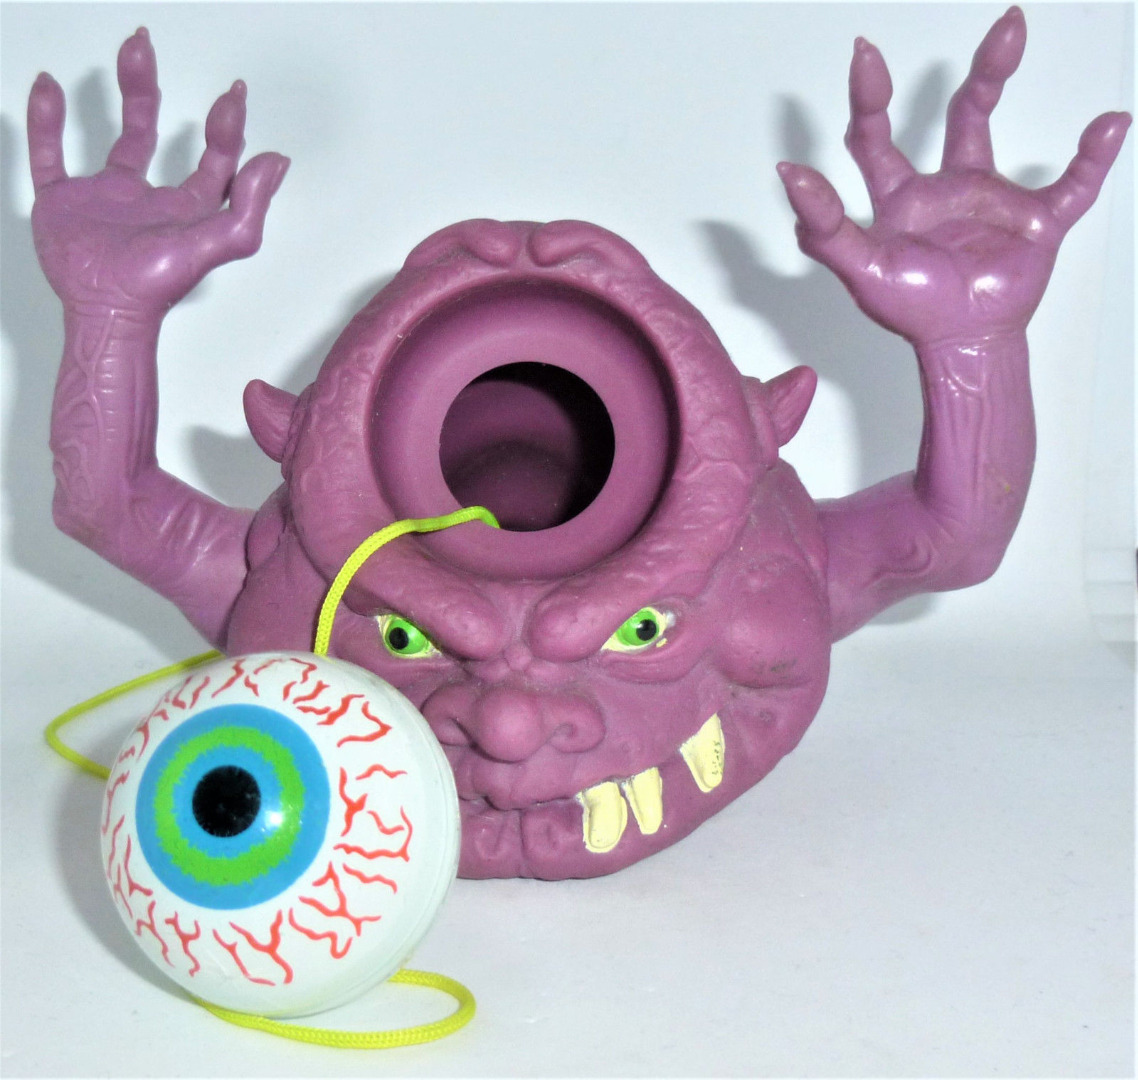 Bug-Eye Ghost violett - The Real Ghostbusters - 2